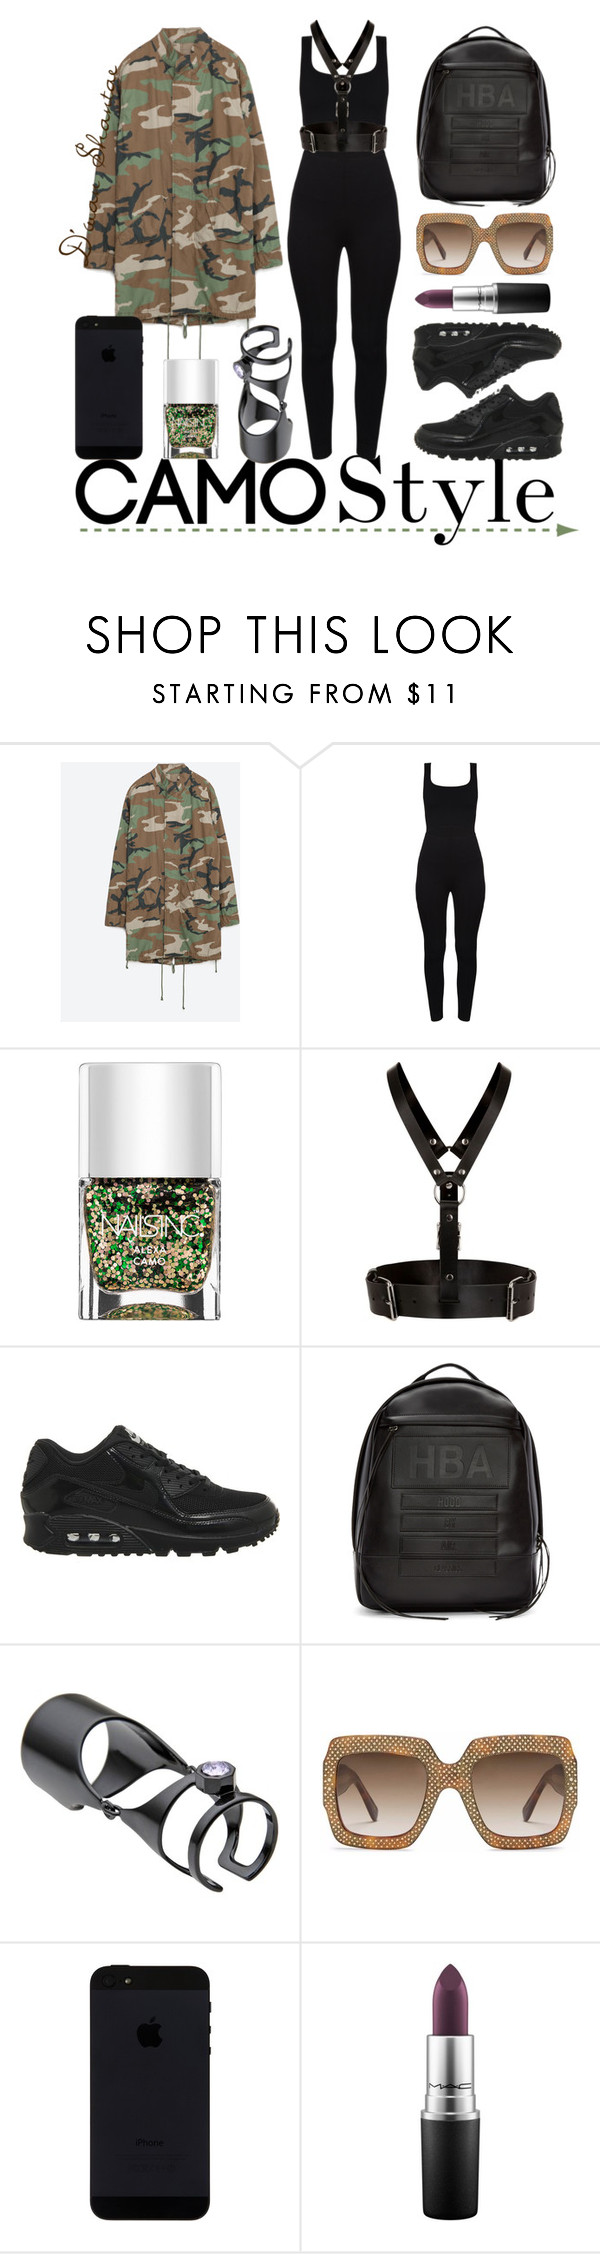 """""""Camo Style"""" by adswil ❤ liked on Polyvore featuring Zara, Nails Inc., Zana Bayne, NIKE, Hood by Air, Maria Francesca Pepe, Gucci, MAC Cosmetics, StreetStyle and black"""